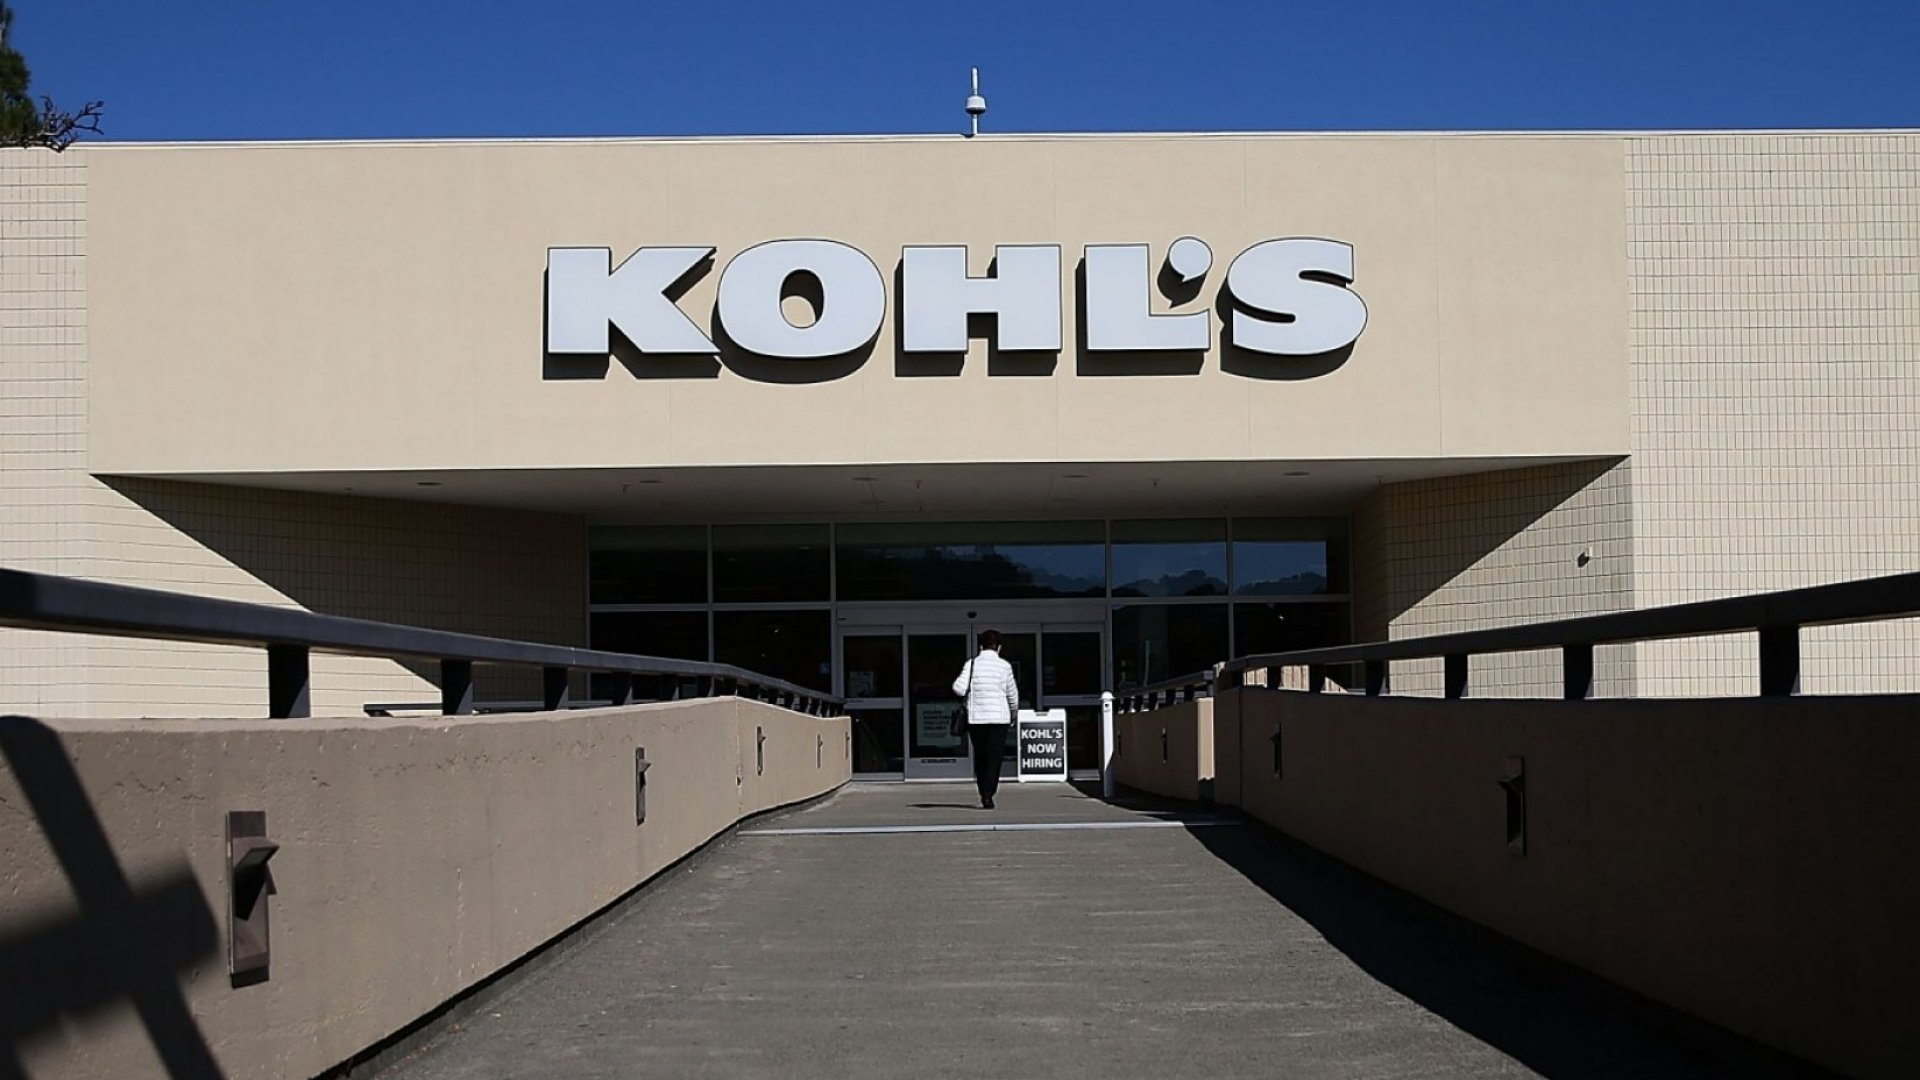 Kohl's and Amazon? Kohl's Just Made a Huge Announcement That May Change the Way We Shop Forever